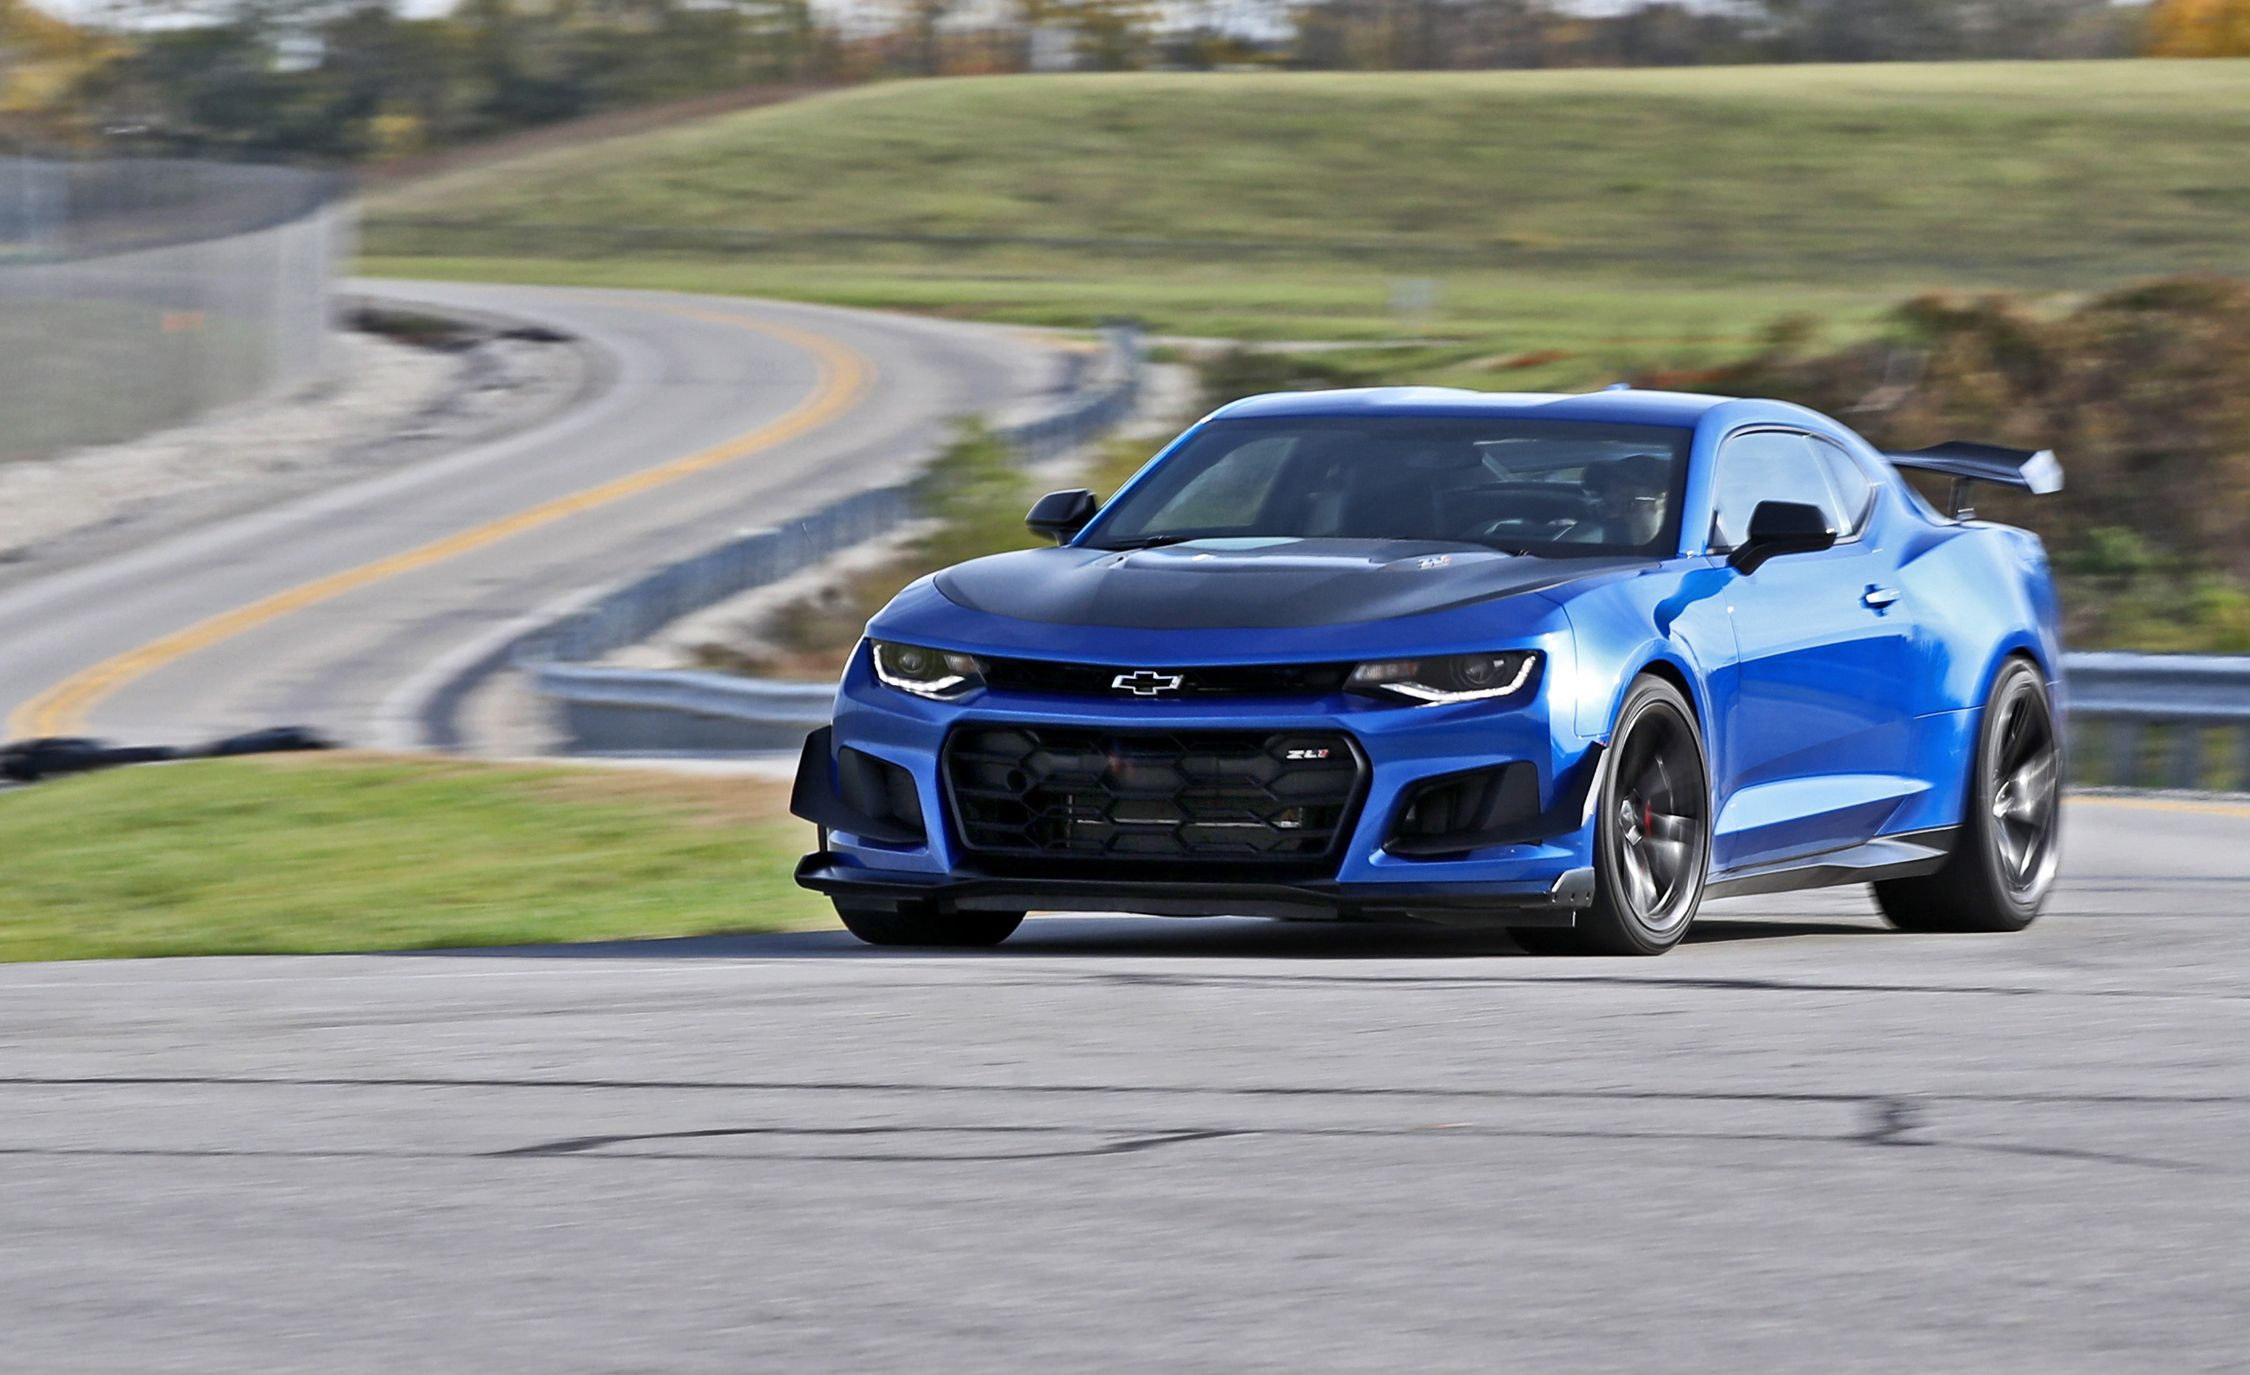 2018 Chevy Camaro Blue With Best Offer Price At Chevrolet